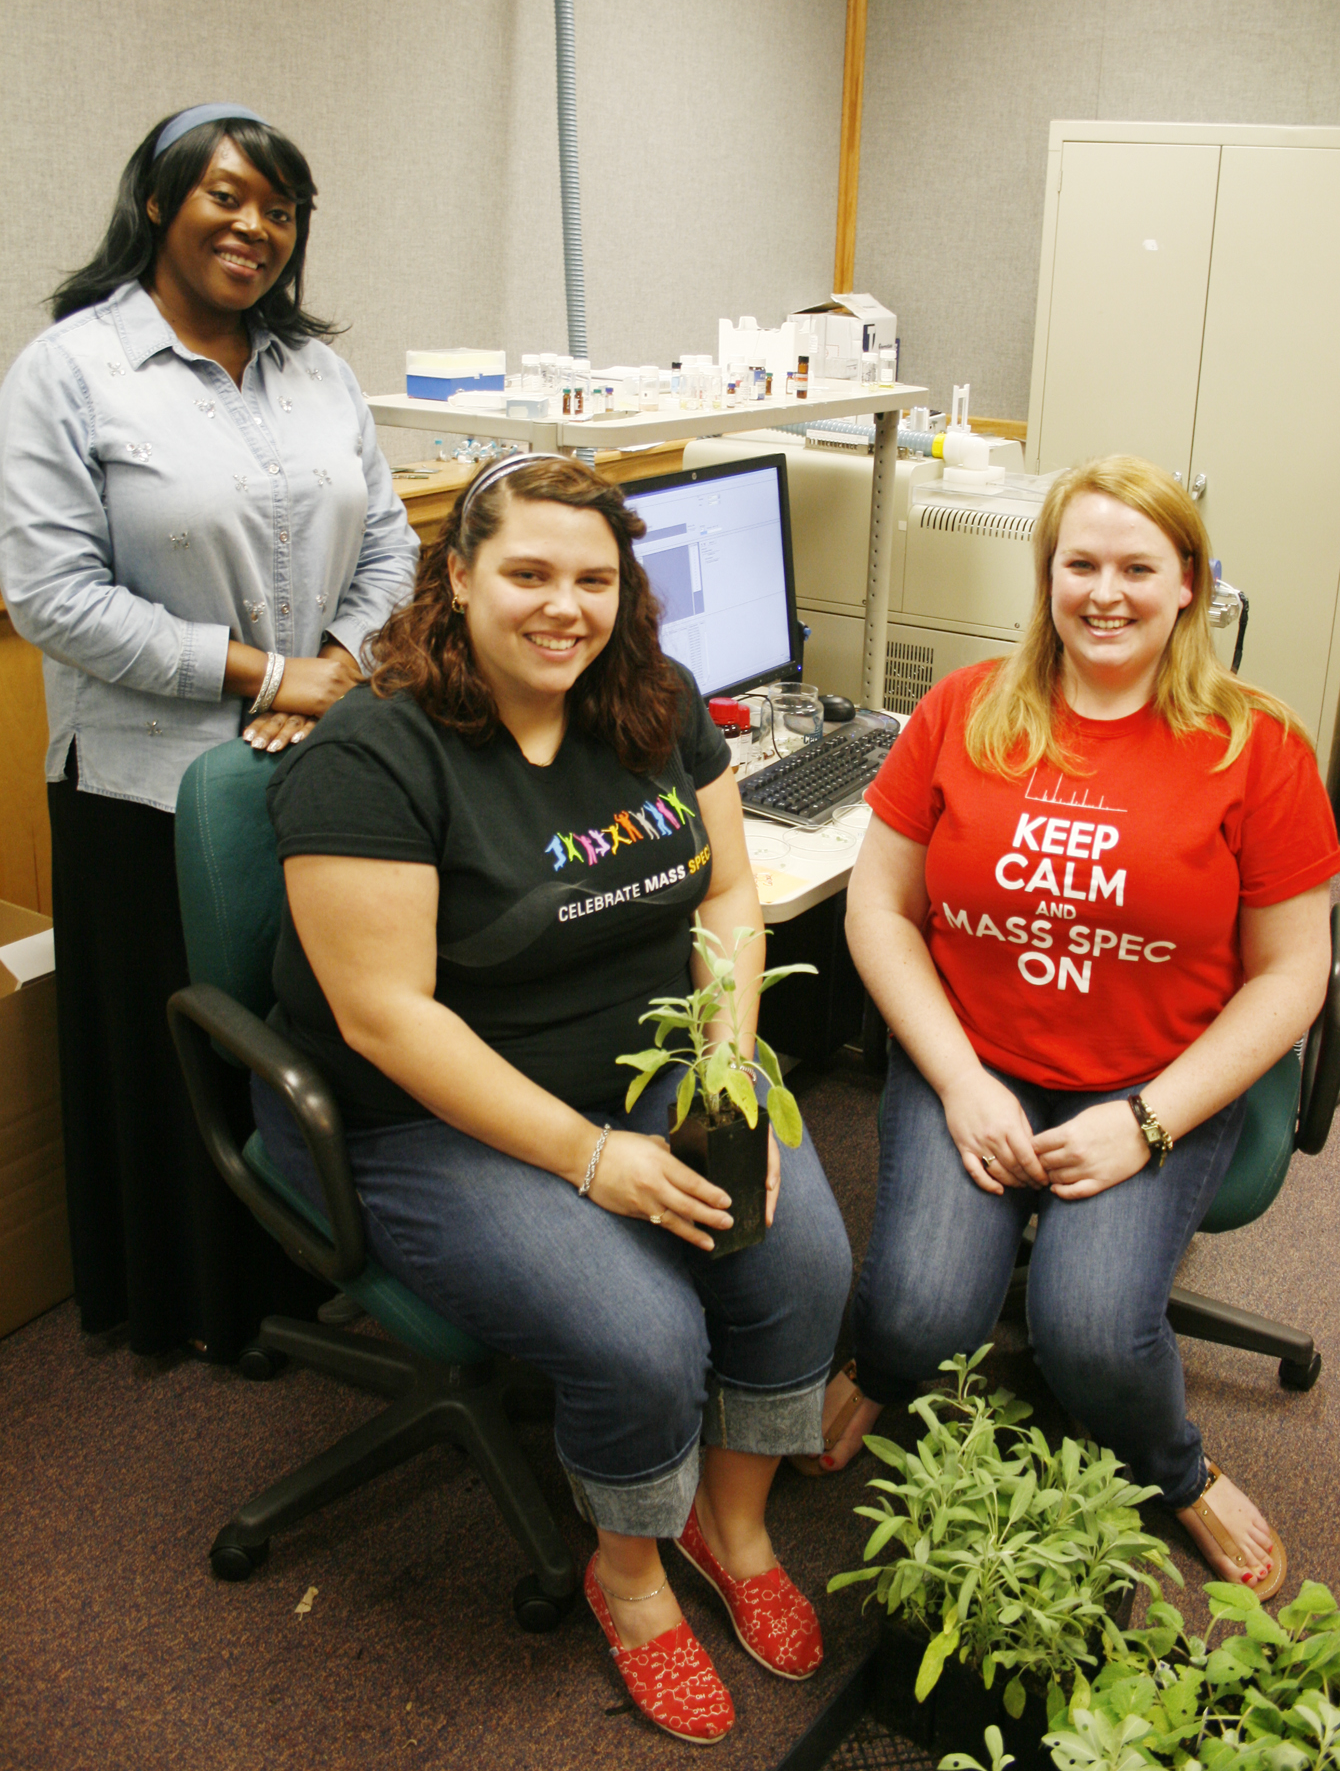 Professor Musah with Ashton and Justine analyzing plant samples at JEOL USA, Inc.